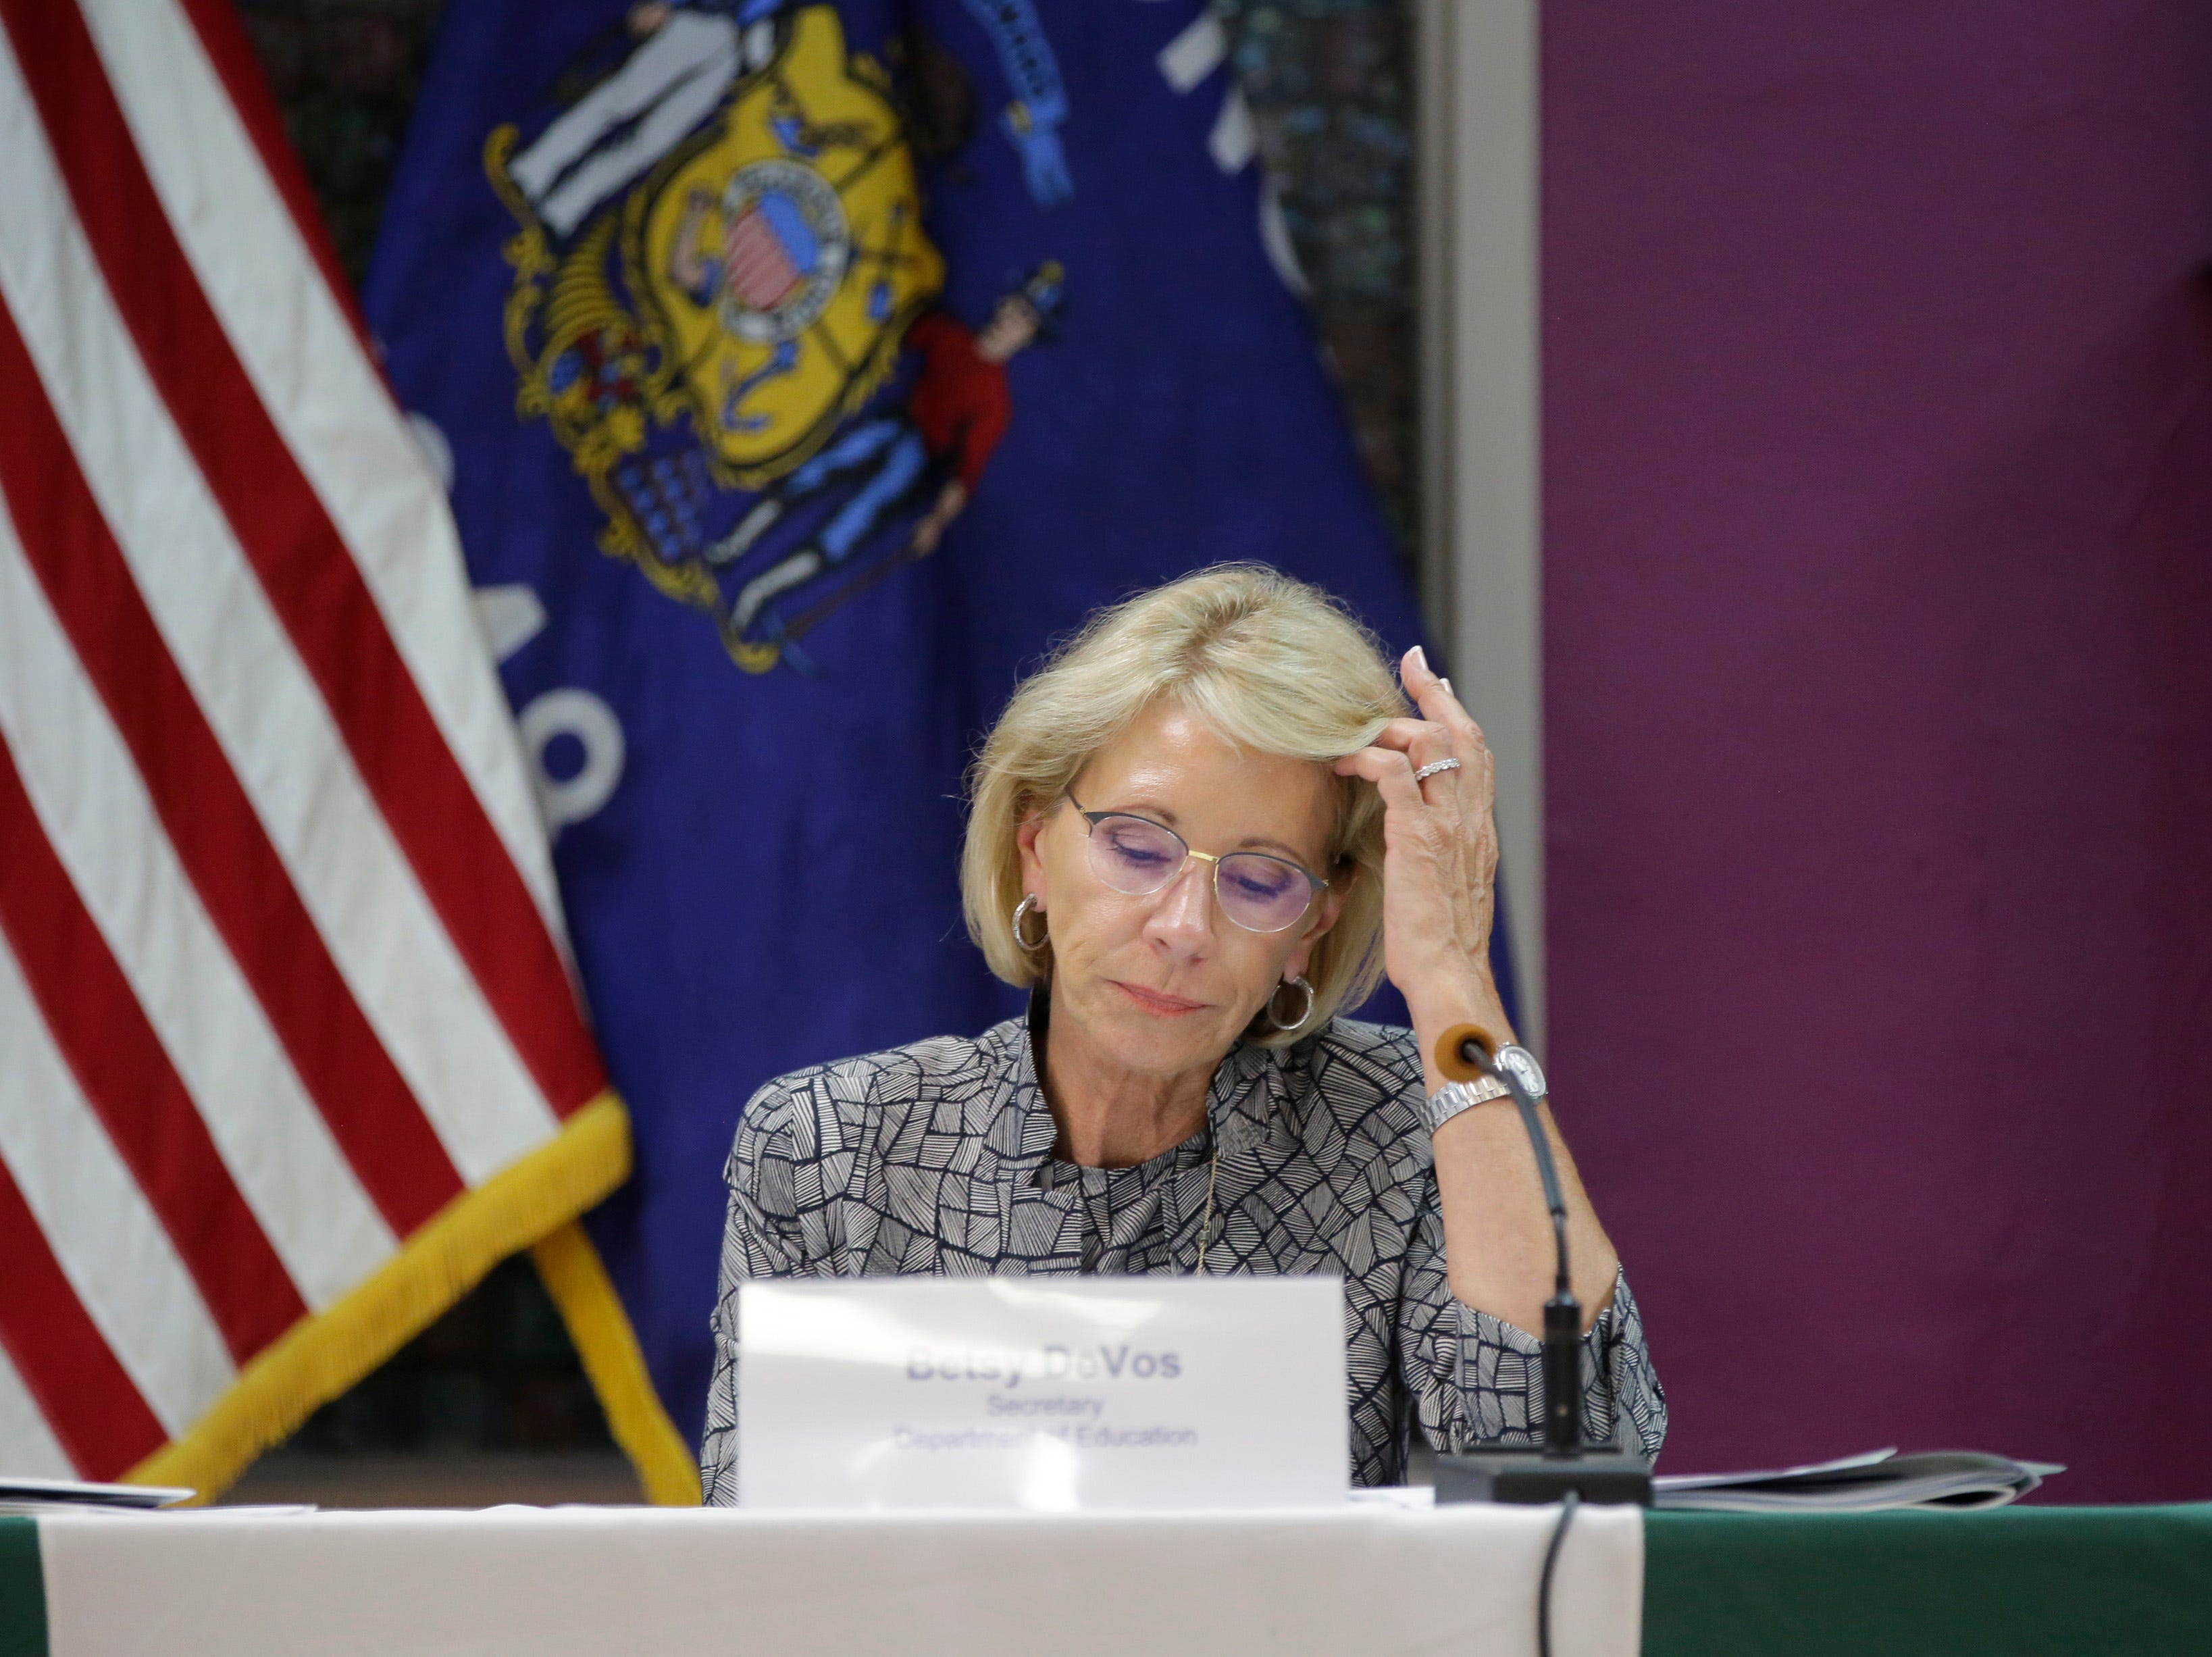 U.S. Secretary of Education Betsy DeVos takes notes as a panel speaks with her at Adams-Friendship Middle School in Adams, Wis. Tuesday, July 24, 2018.